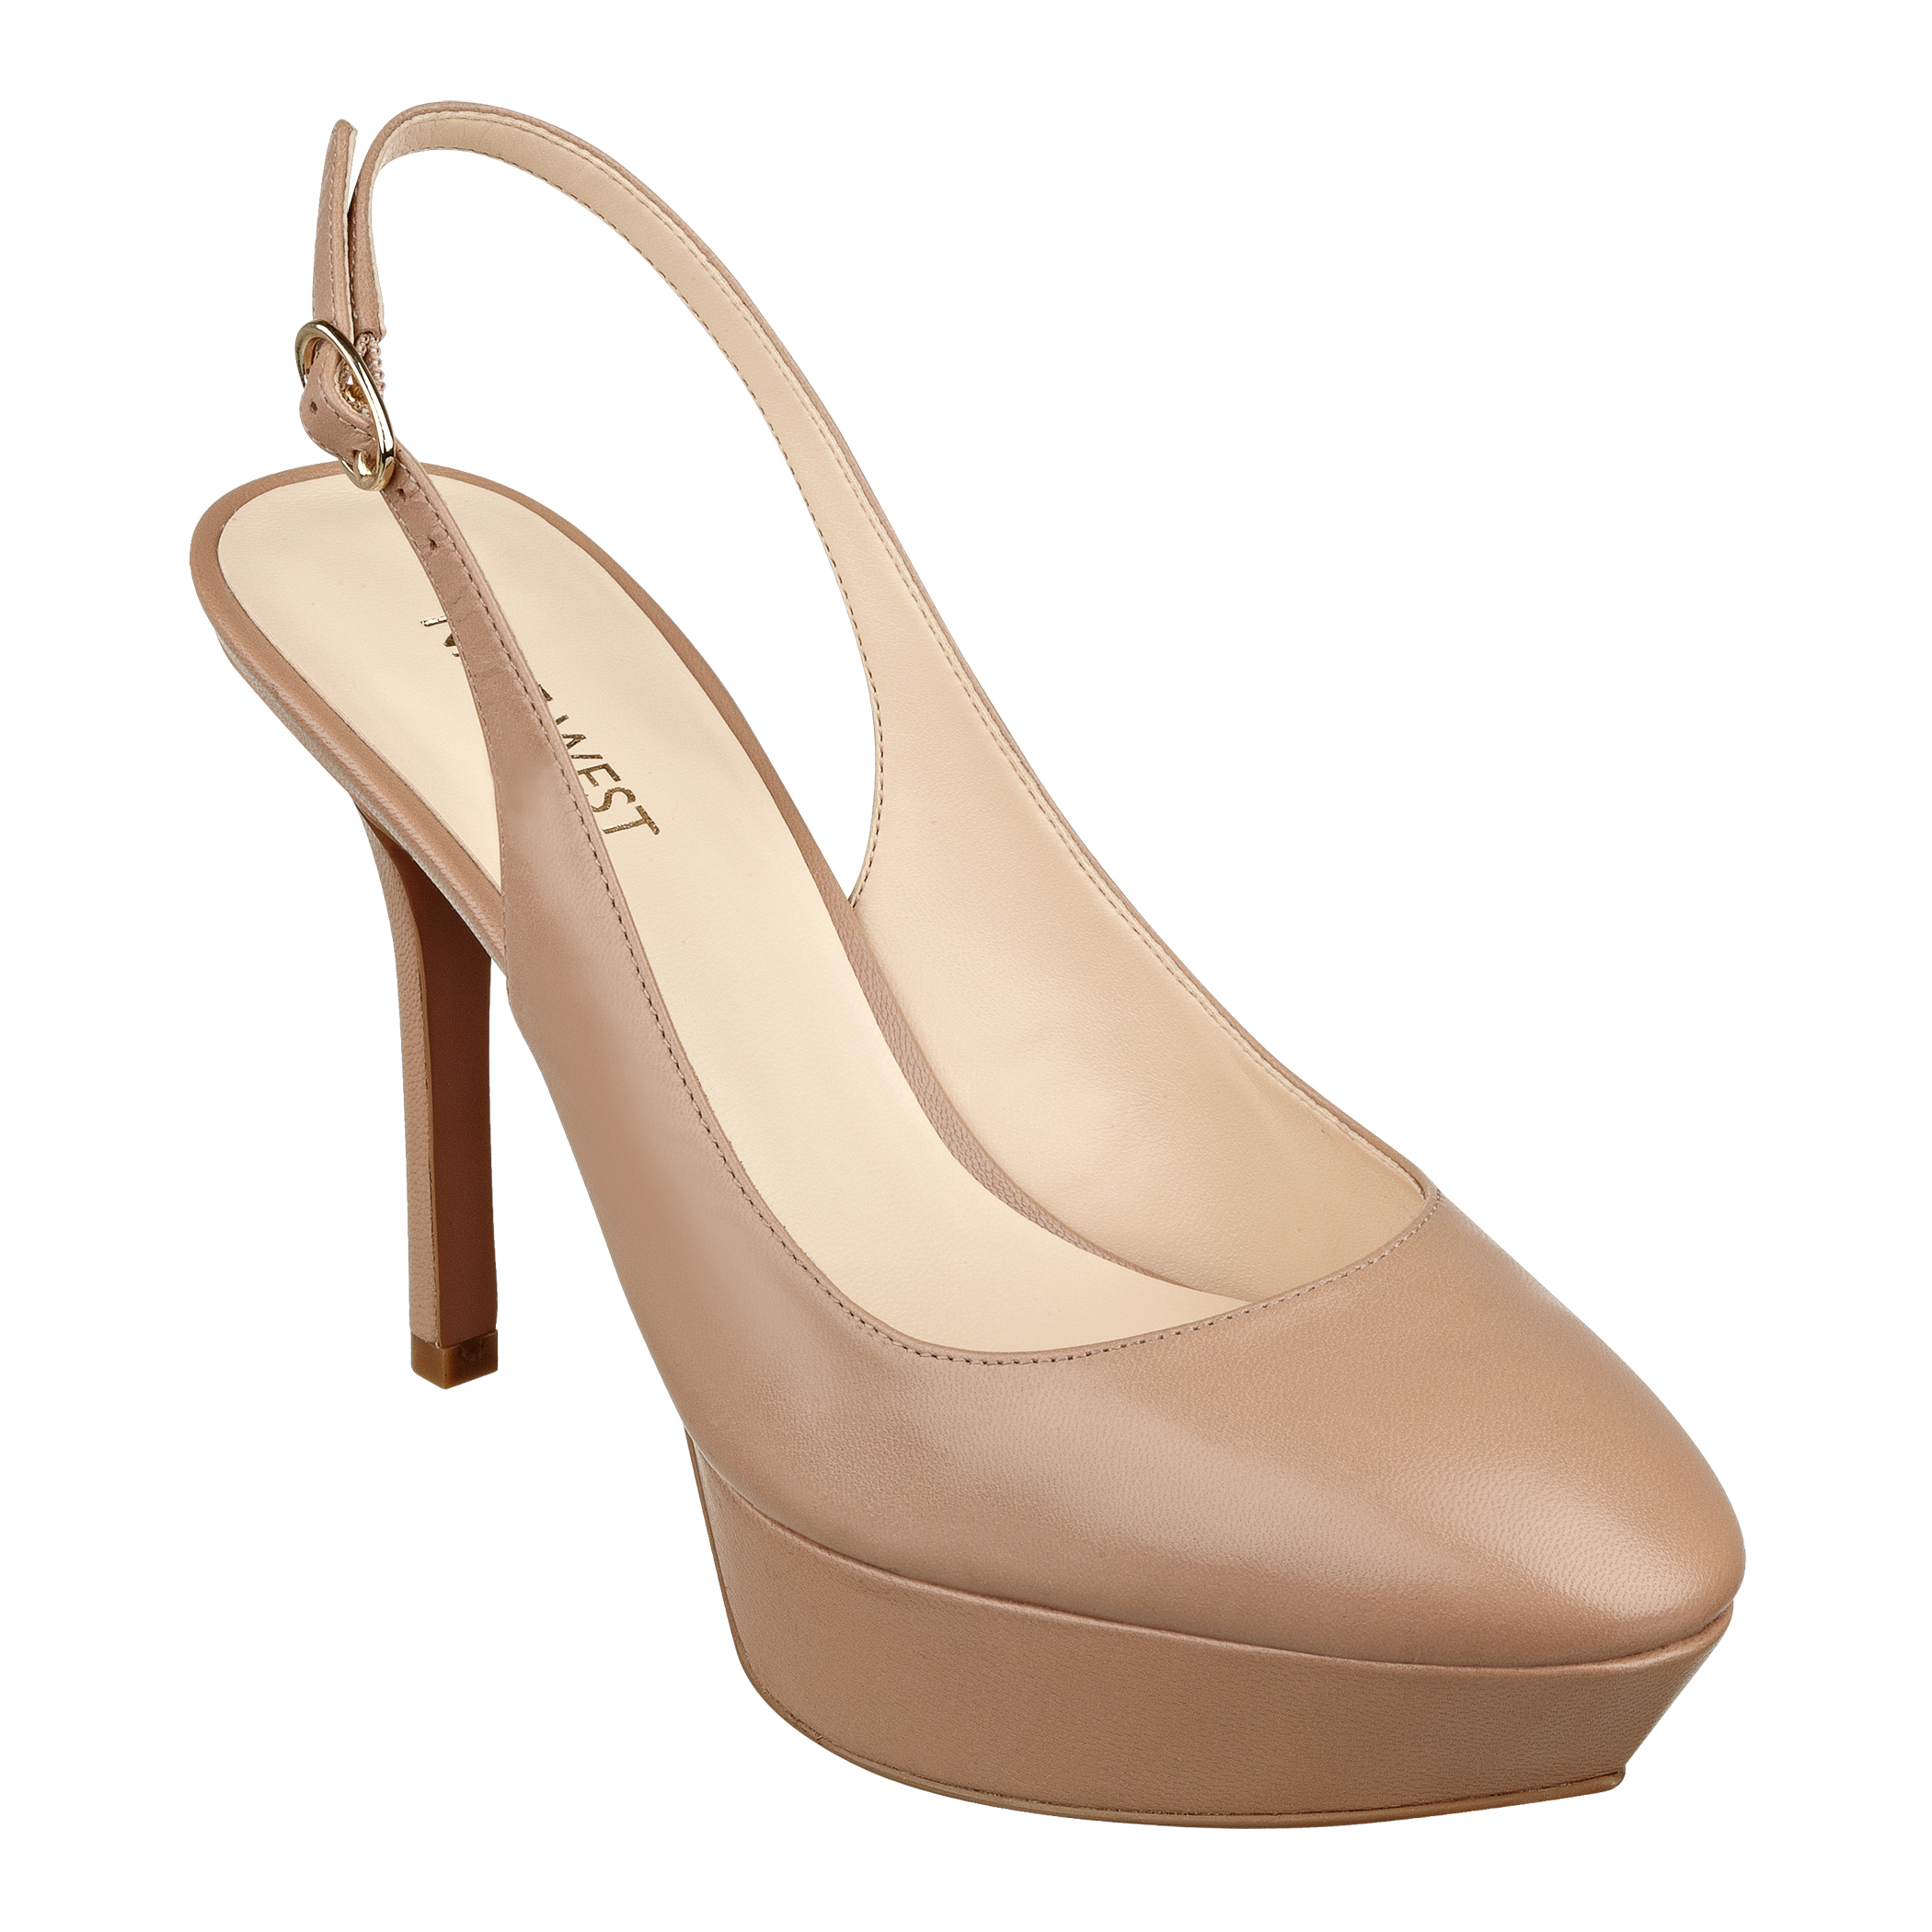 Latest Fashion of Stiletto & Heels Collection for women by Nine West(22)